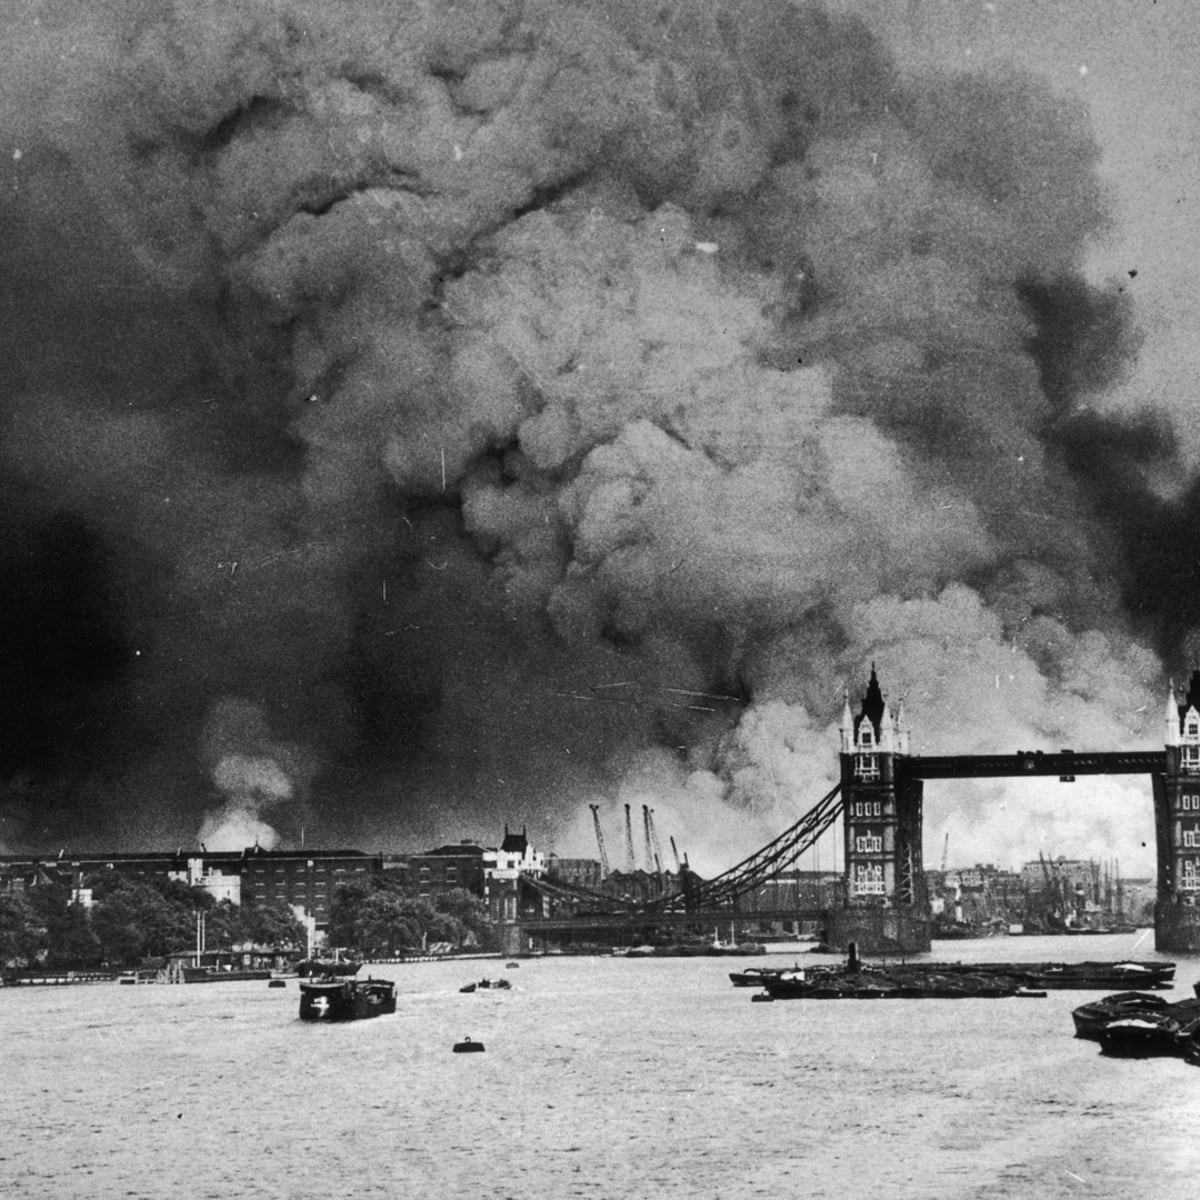 The Blitz begins as Germany bombs London - HISTORY